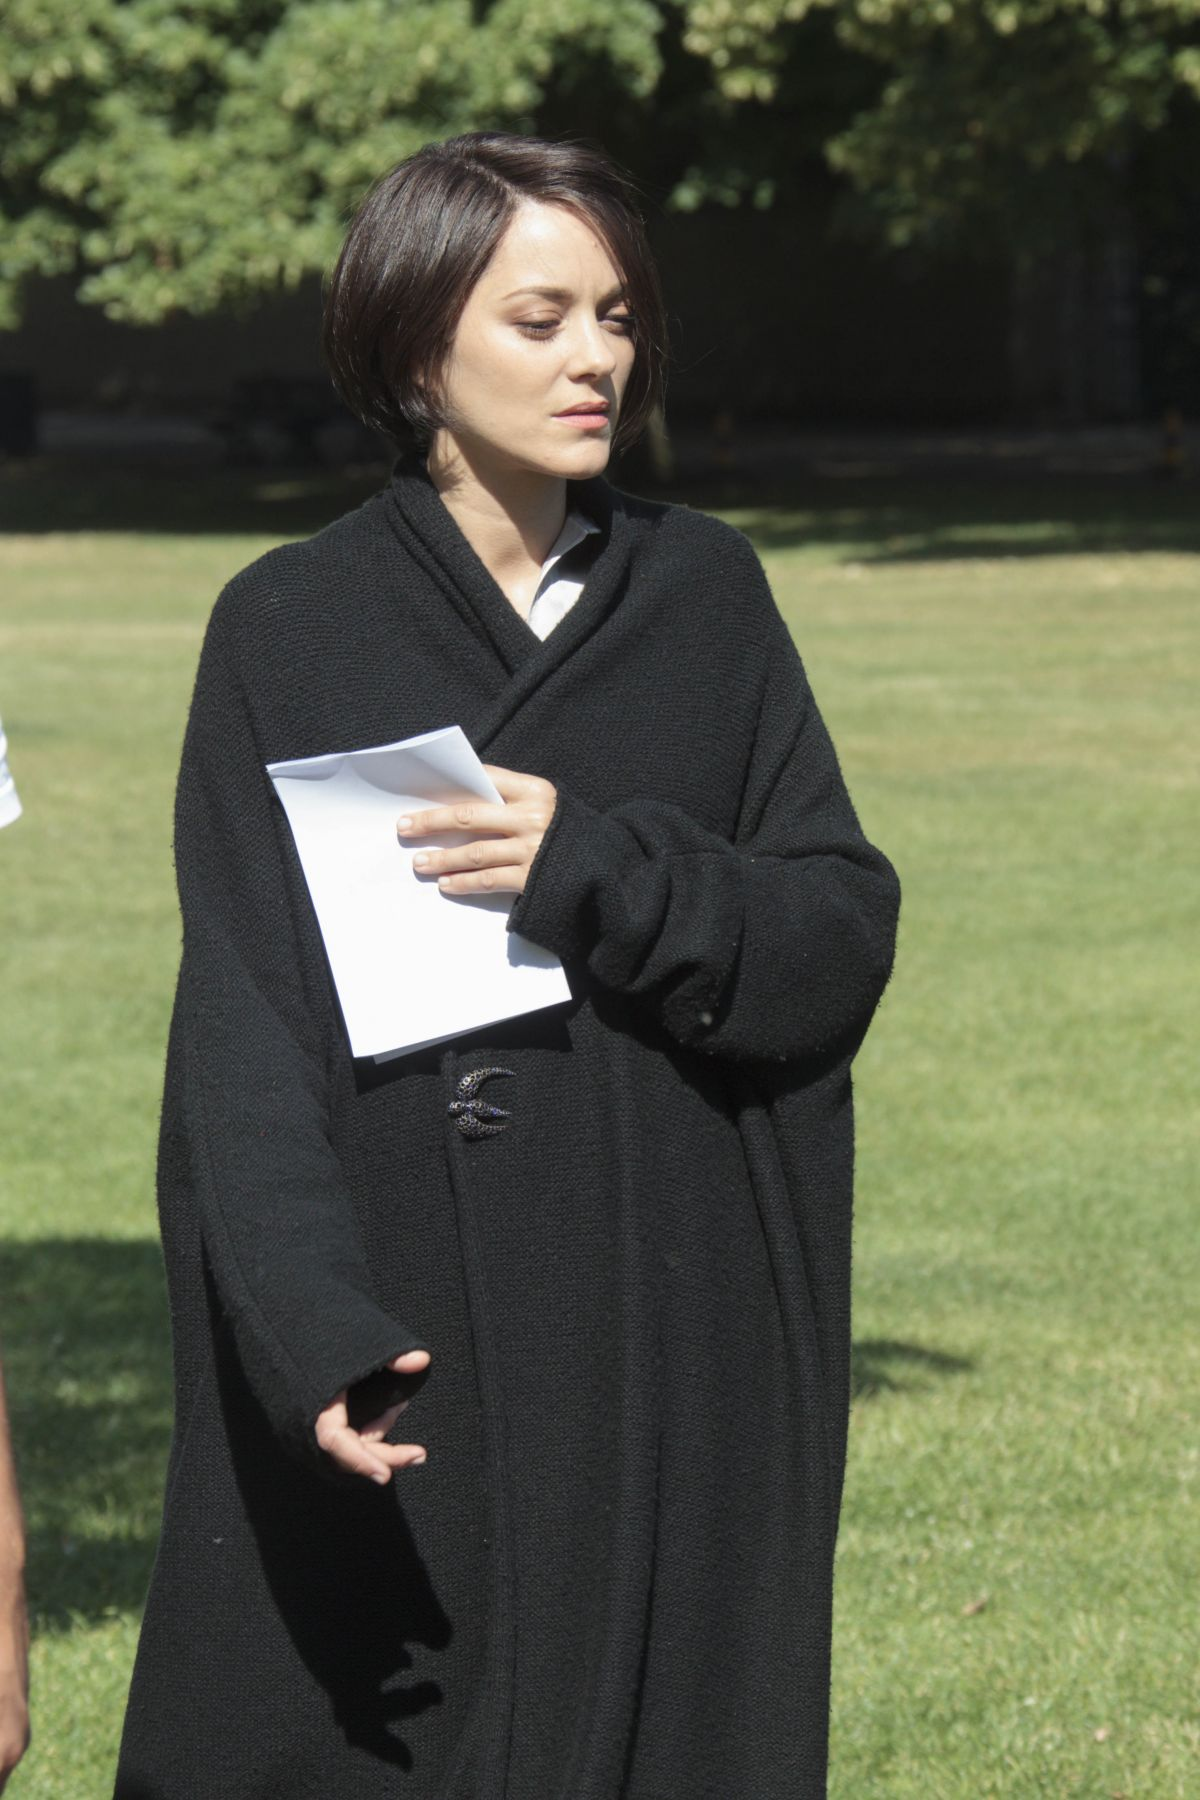 MARION COTILLARD on the Set of Assassins Creed in Ely 07/26/2016 Marion Cotillard